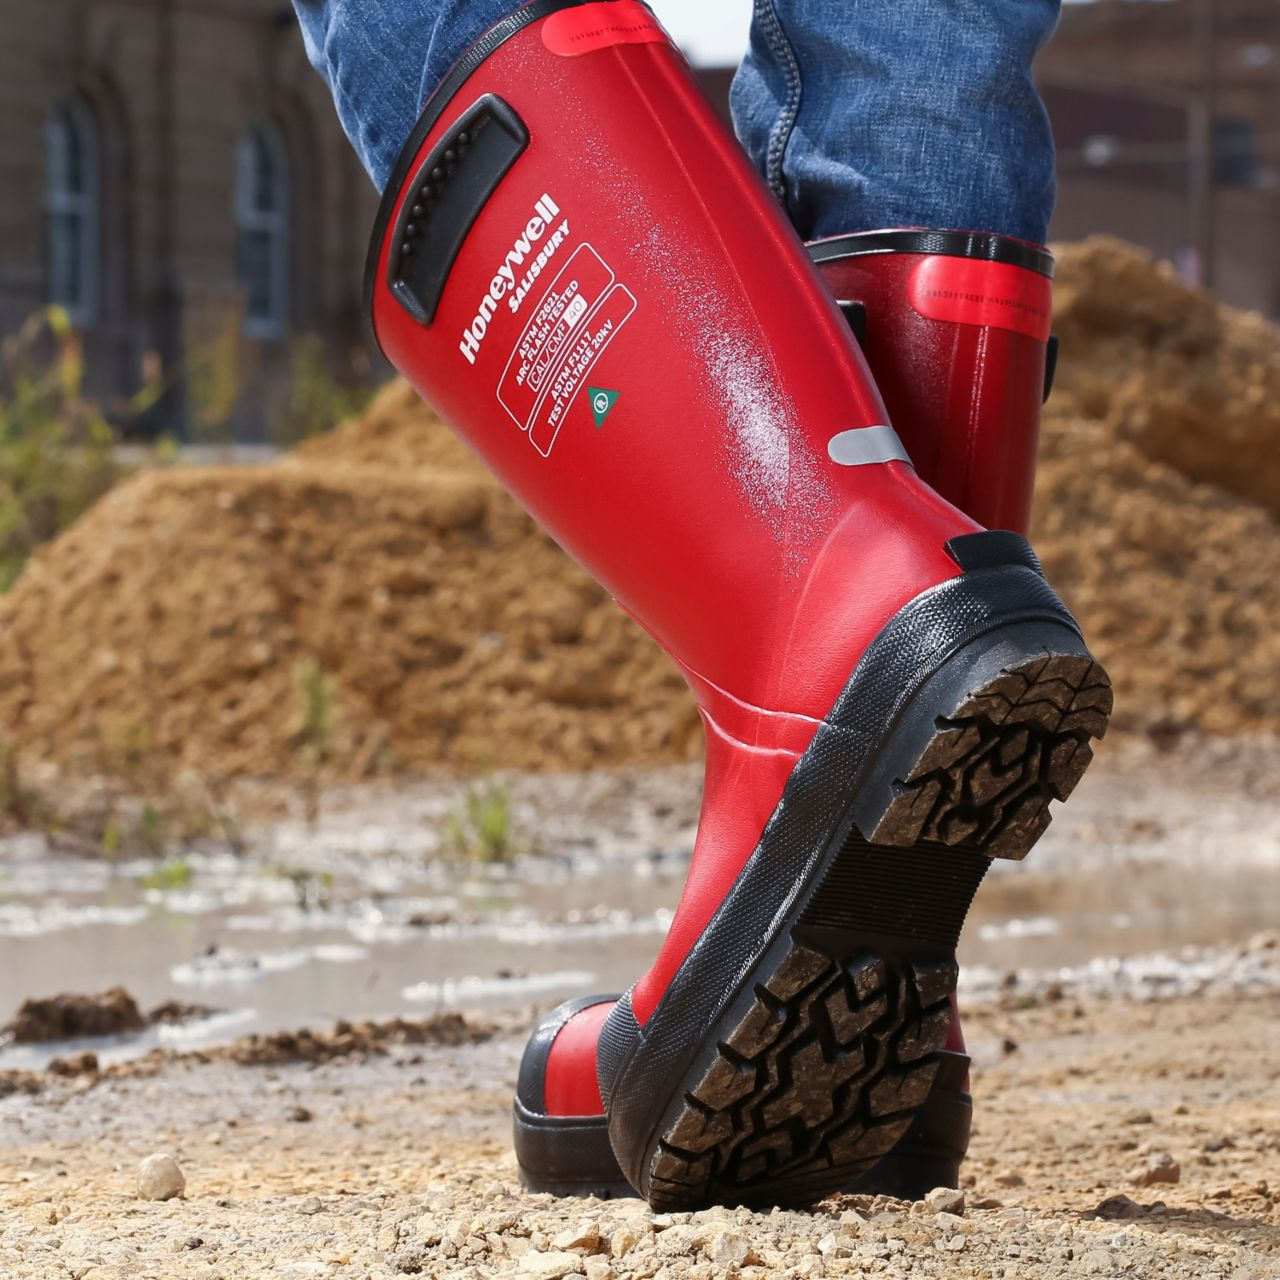 sps-his-electrigrip-boots-walking-on-gravel